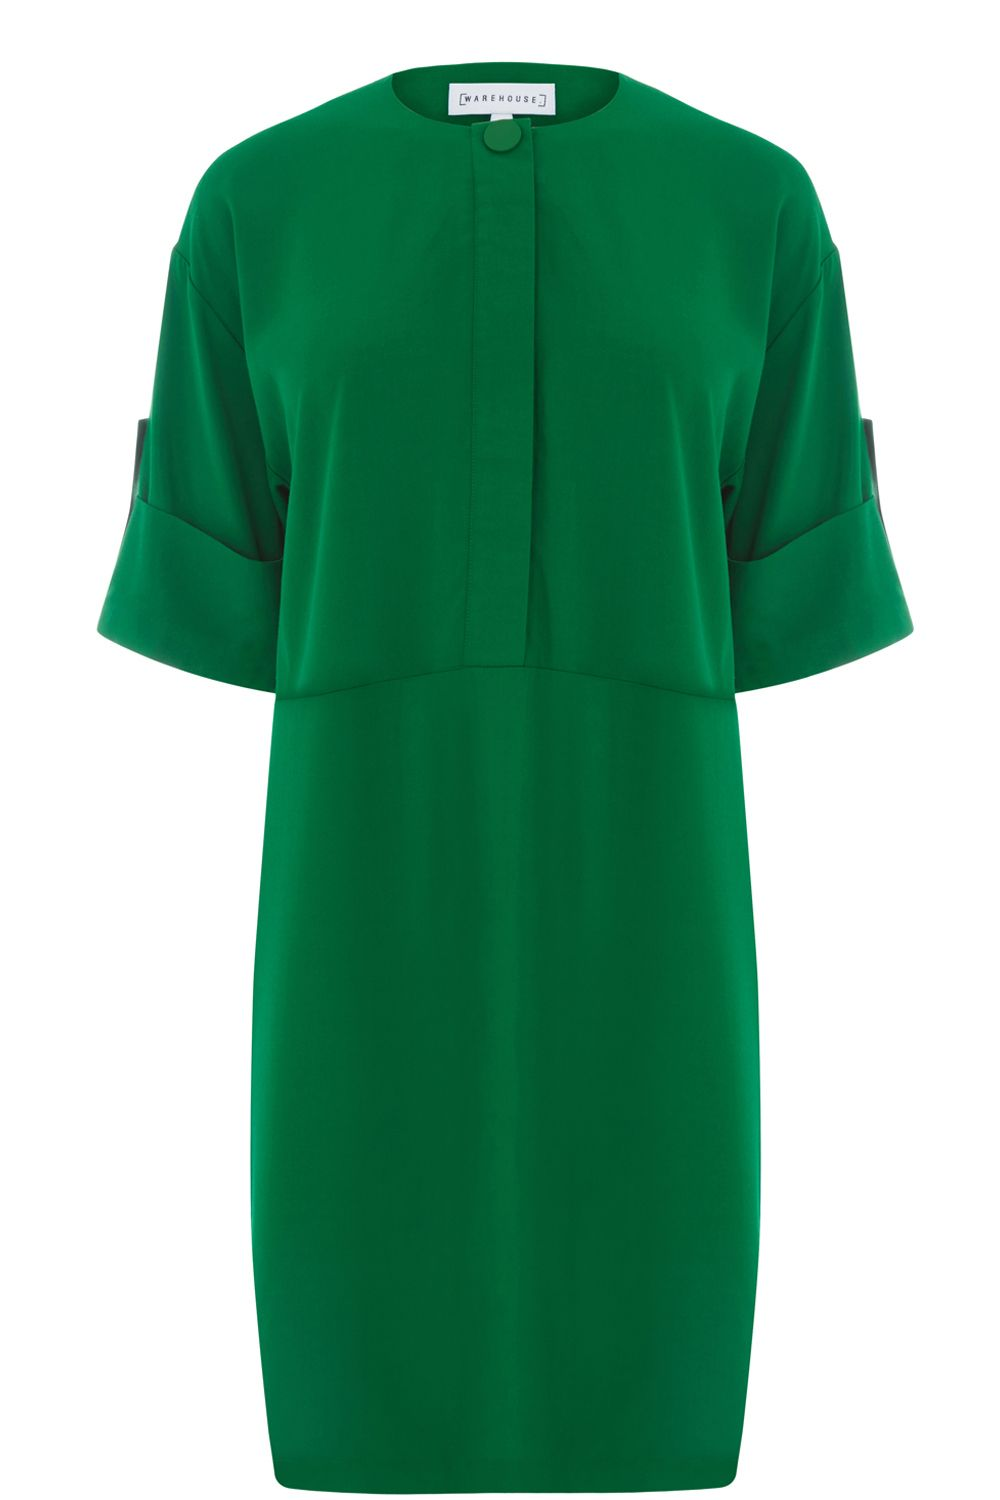 Warehouse Popper Detail Dress, Dark Green